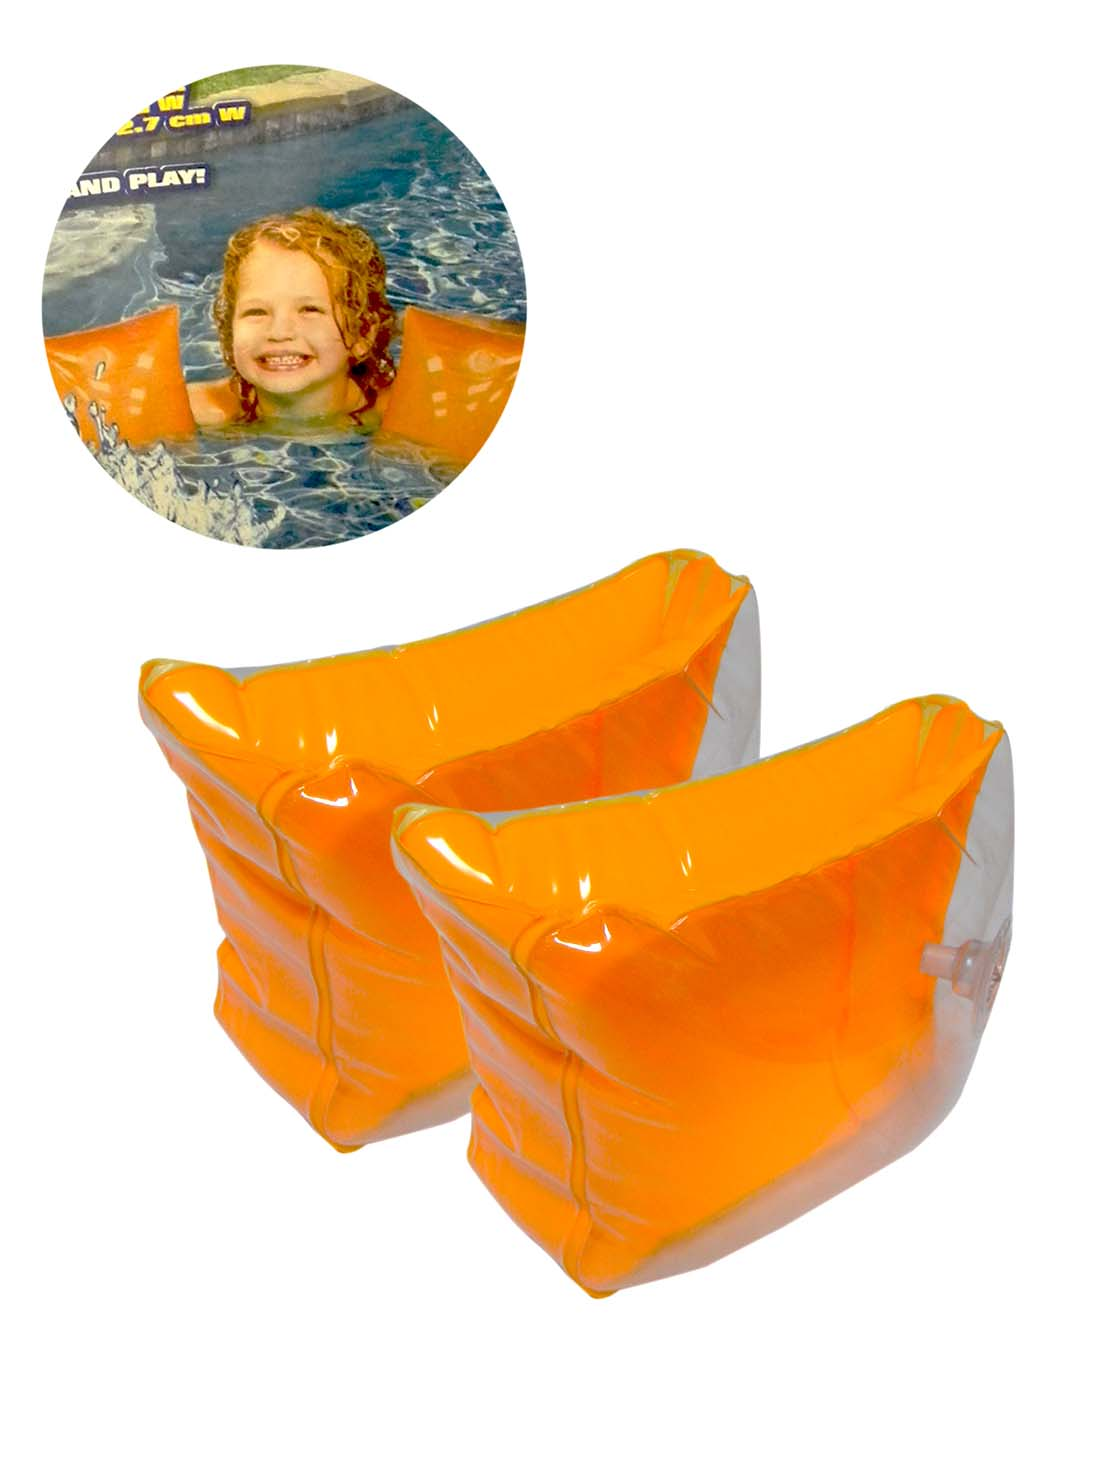 View BANZAI KIDS SWIM ARMBAND 8 X 5 INCH WITH REPAIR PATCH PREPRICED $1.00